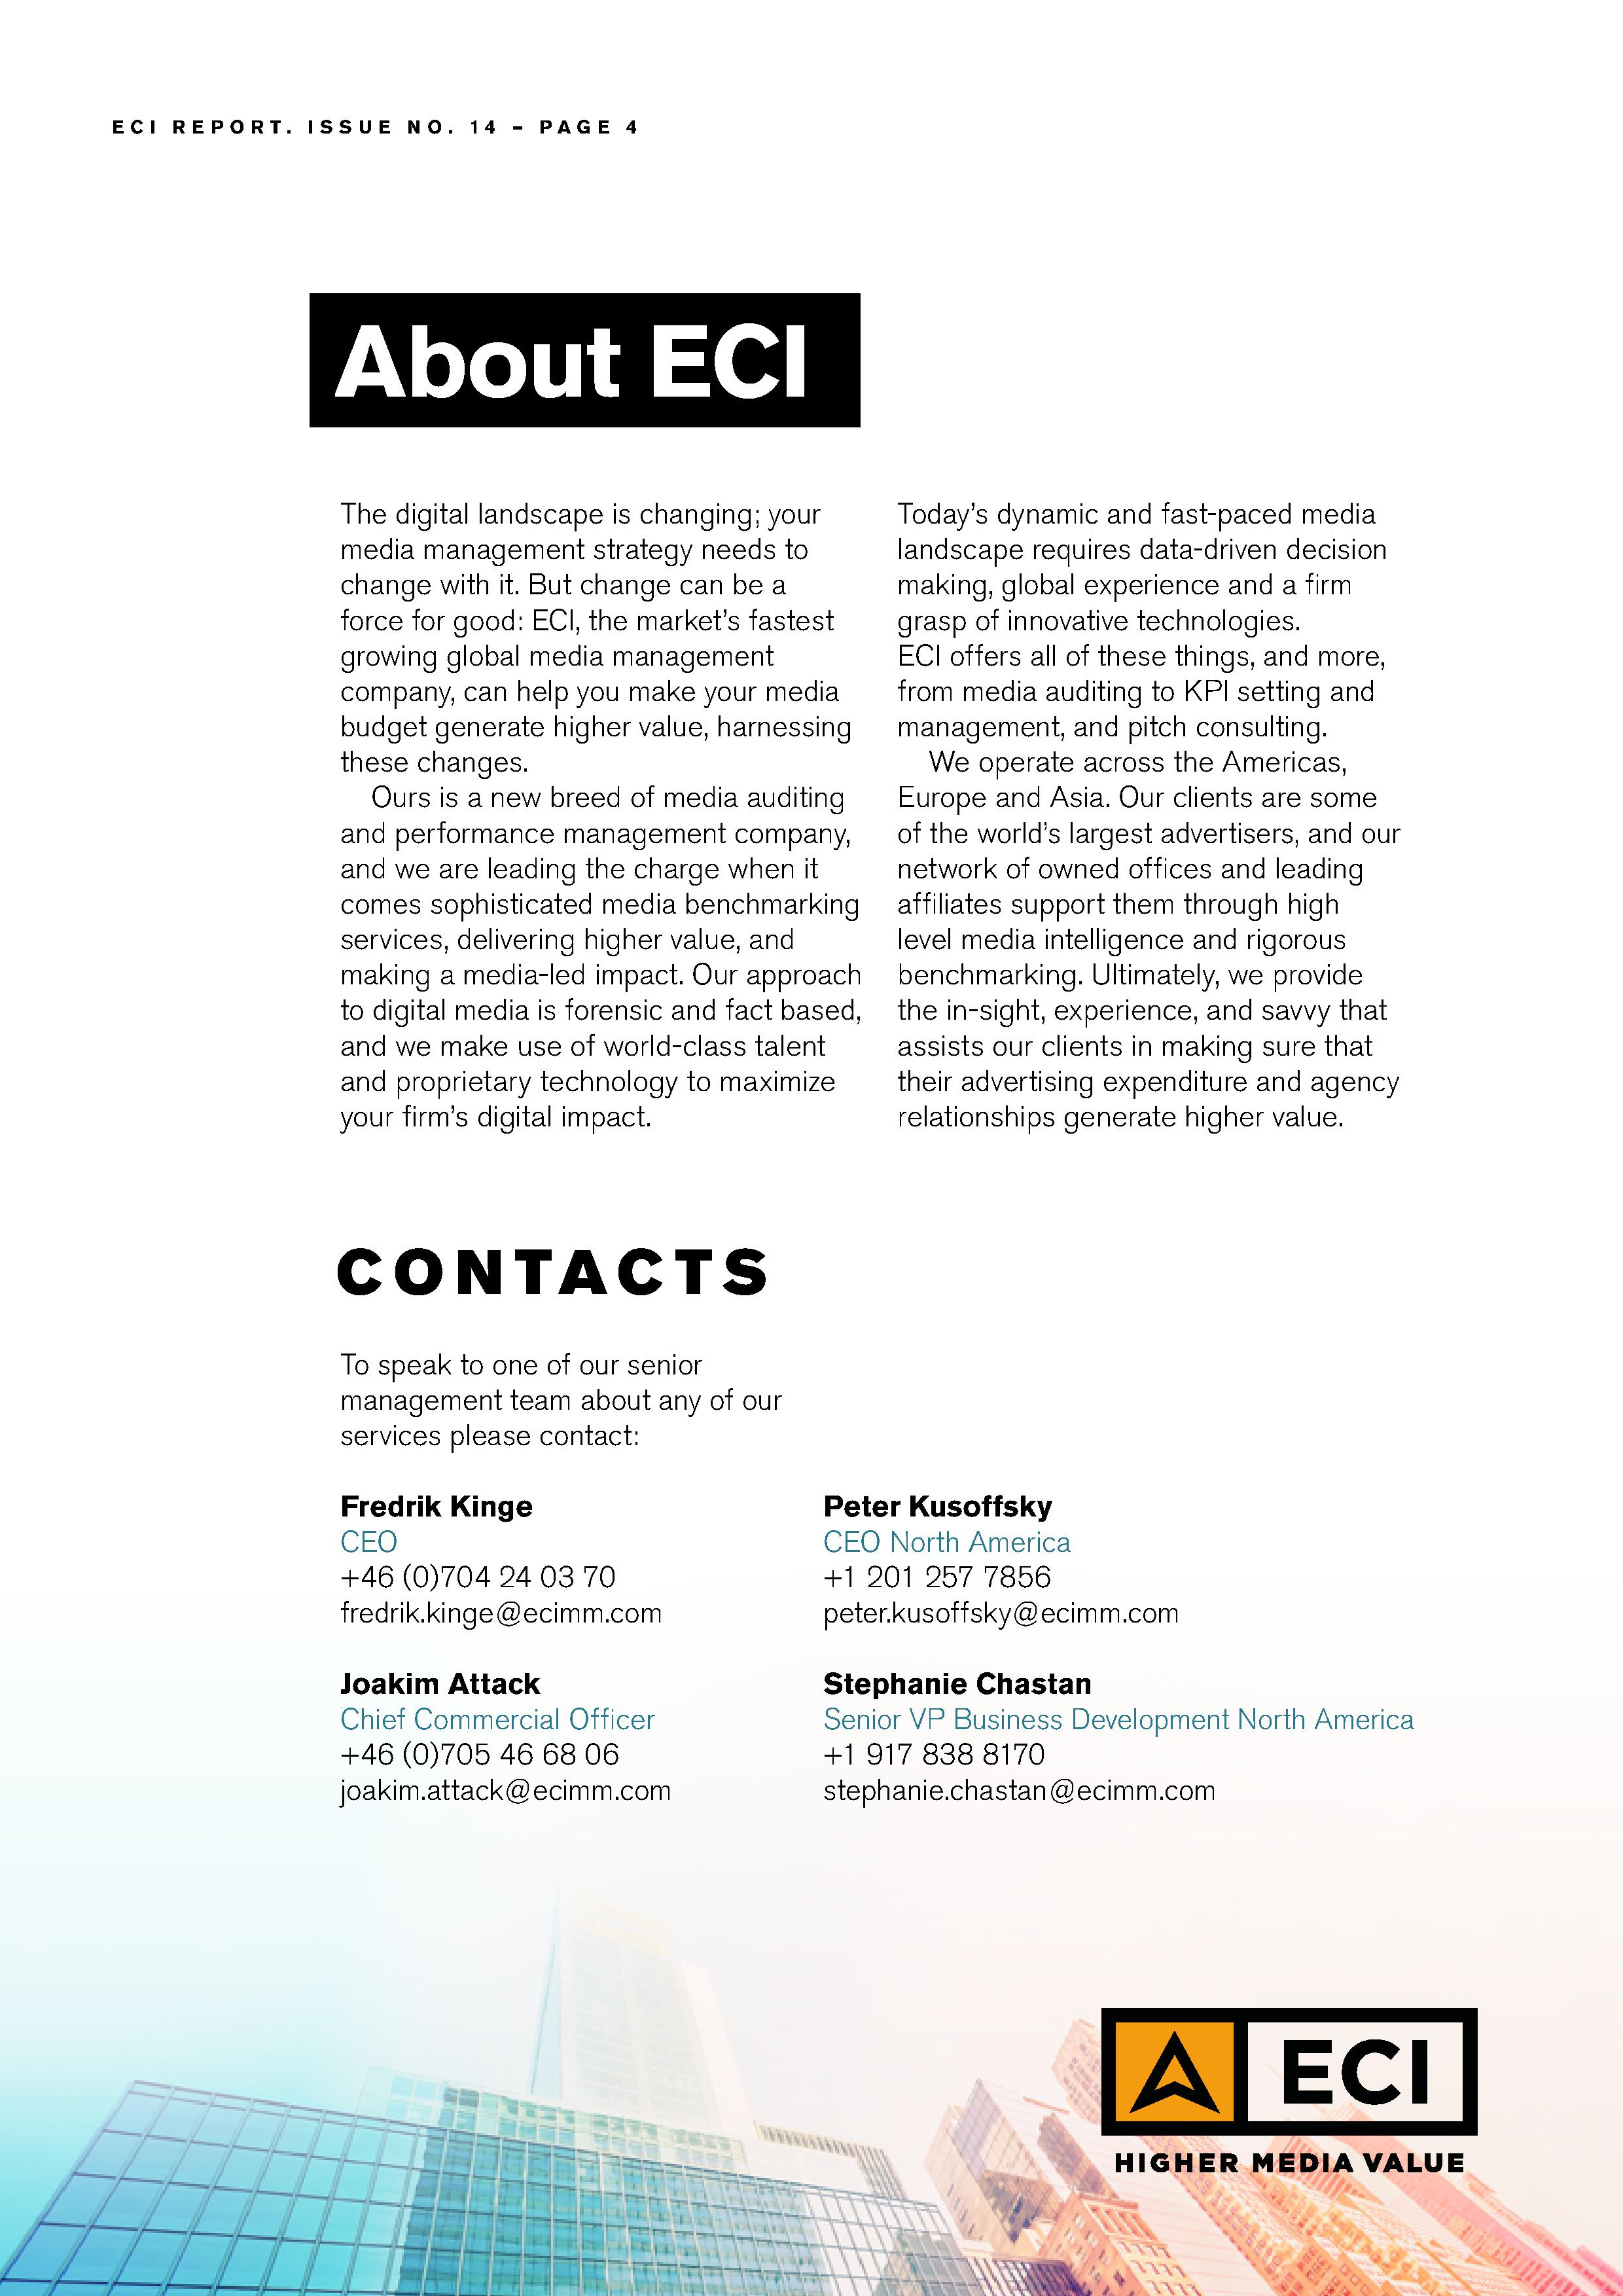 eci_report_issue14_2016004